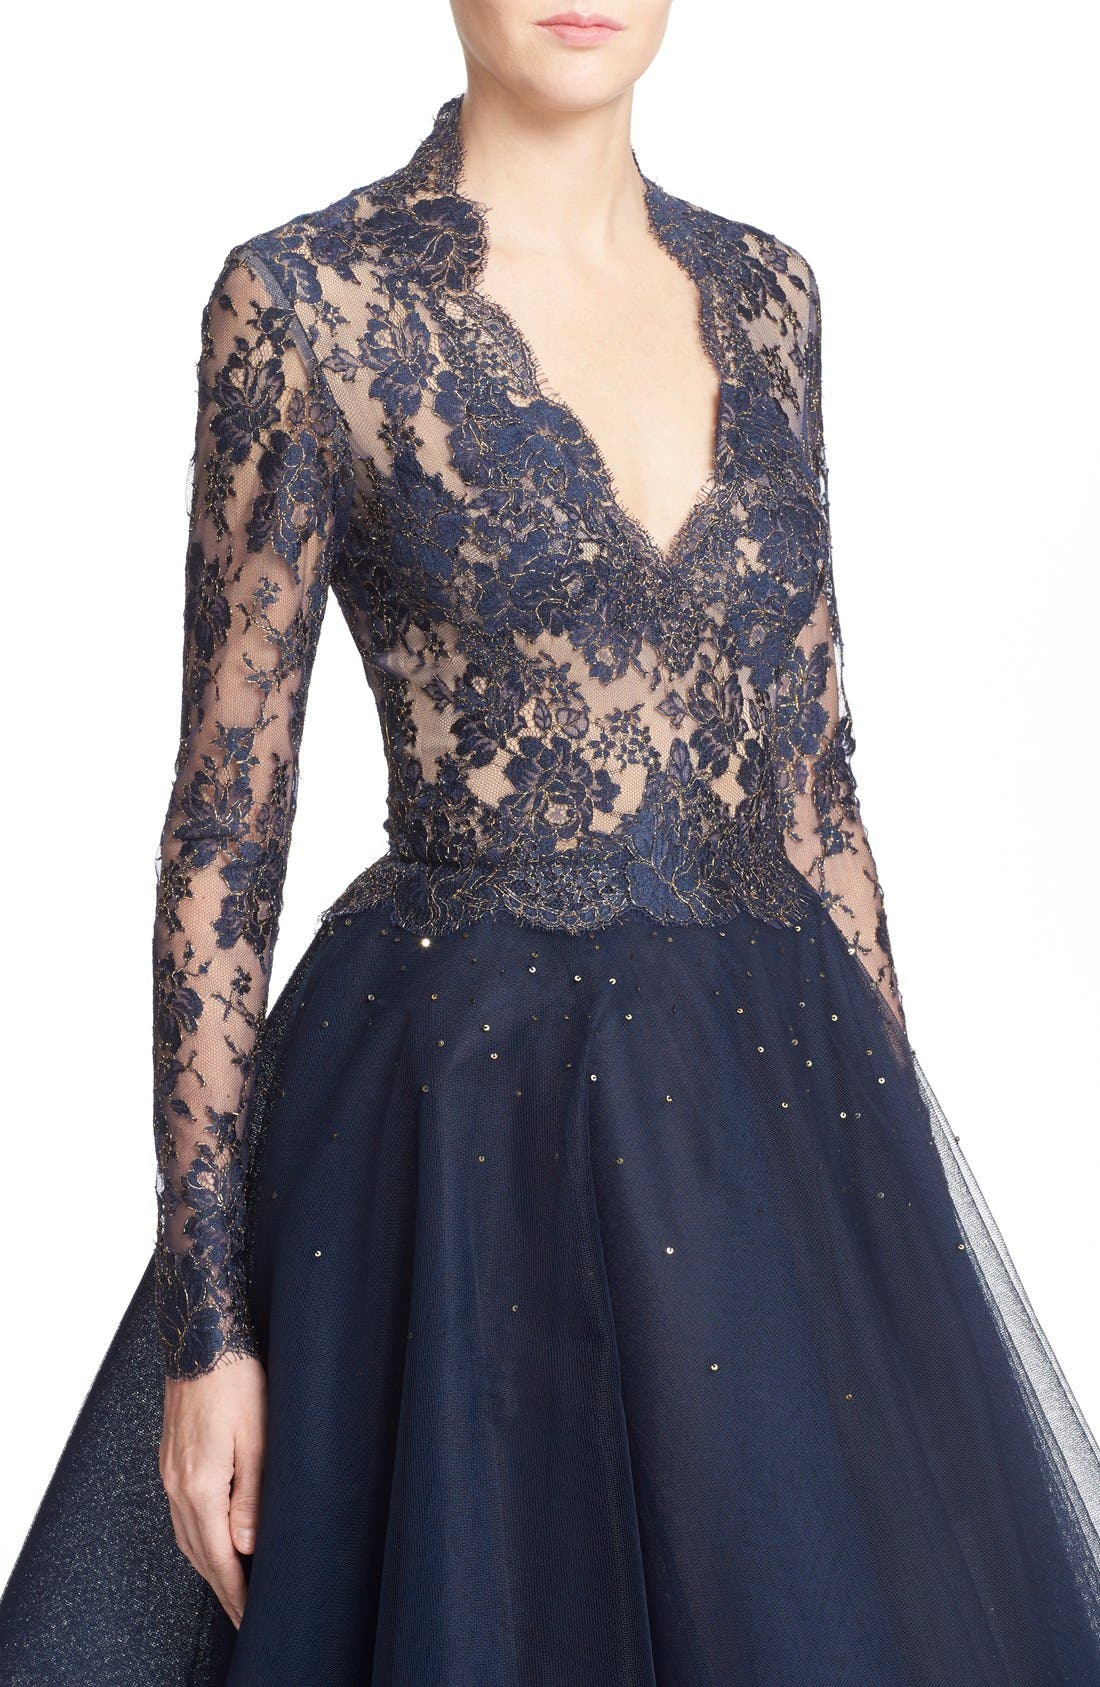 Chantilly Lace & Embellished Tulle High/Low Dress,                             Alternate thumbnail 6, color,                             Navy